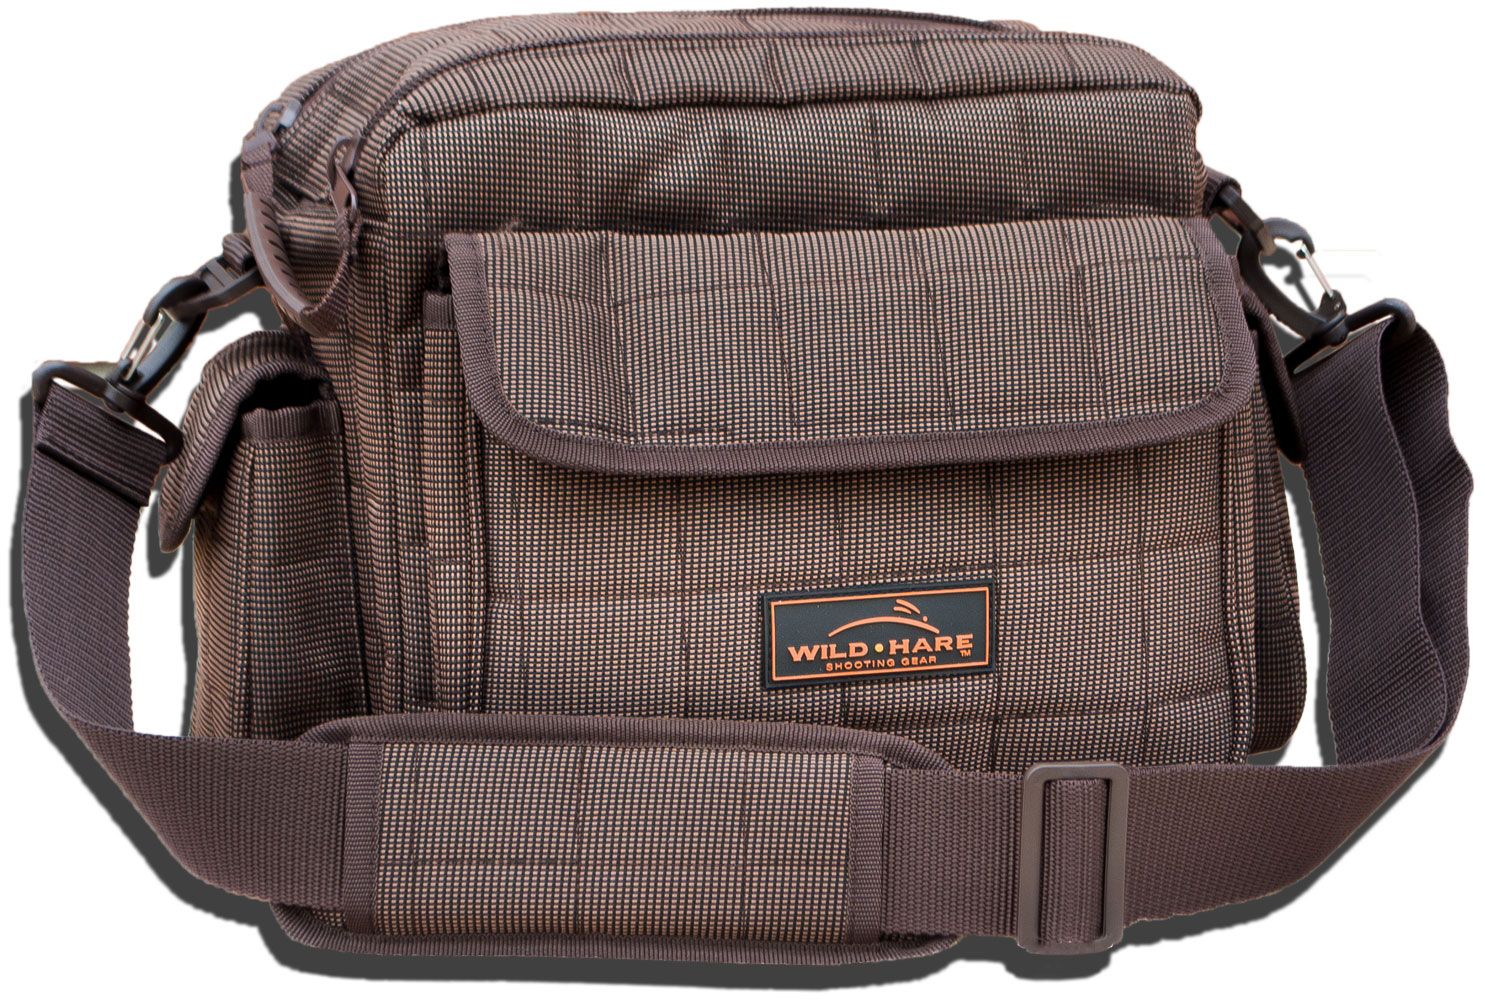 NEW! Wild Hare Premium Sporting Clays Bag Wild Hare Shooting Bag, Wild Hare sporting clays, Wild Hare Sporting Clays Bag, best sporting clays bag